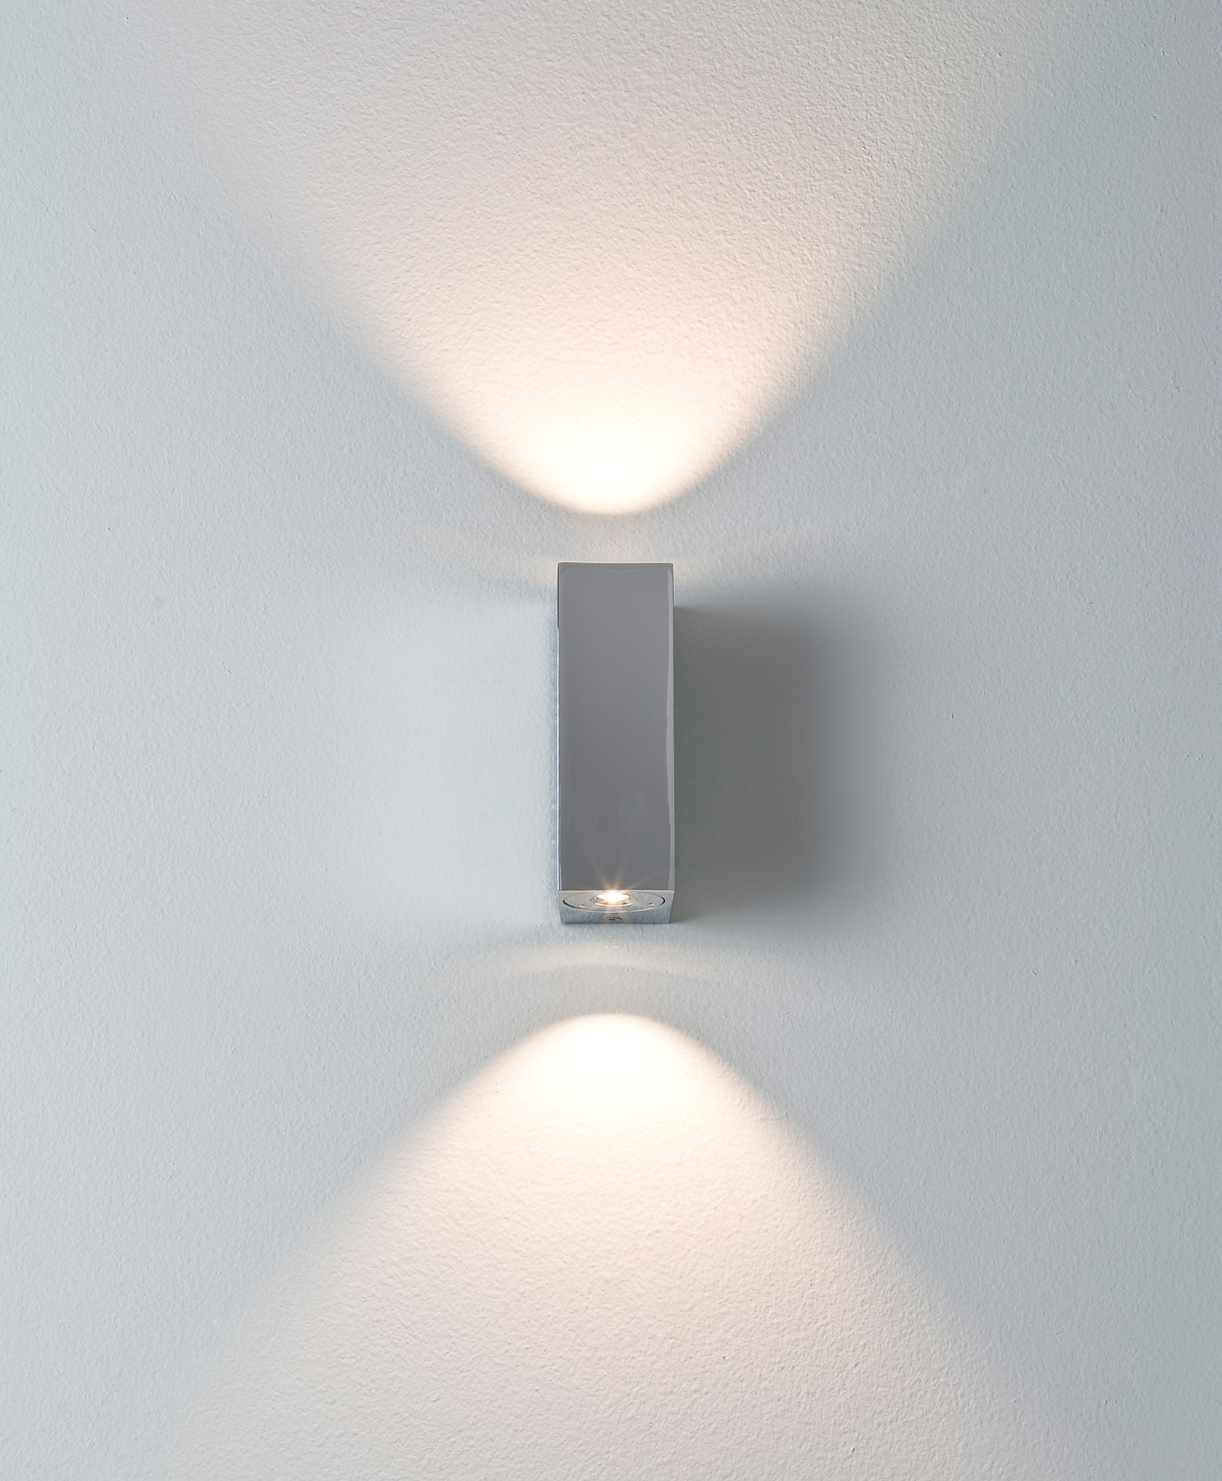 ASTRO Bloc 0829 bathroom LED up down wall light 2 X 1W 3000K warmwhite chrome Thumbnail 2